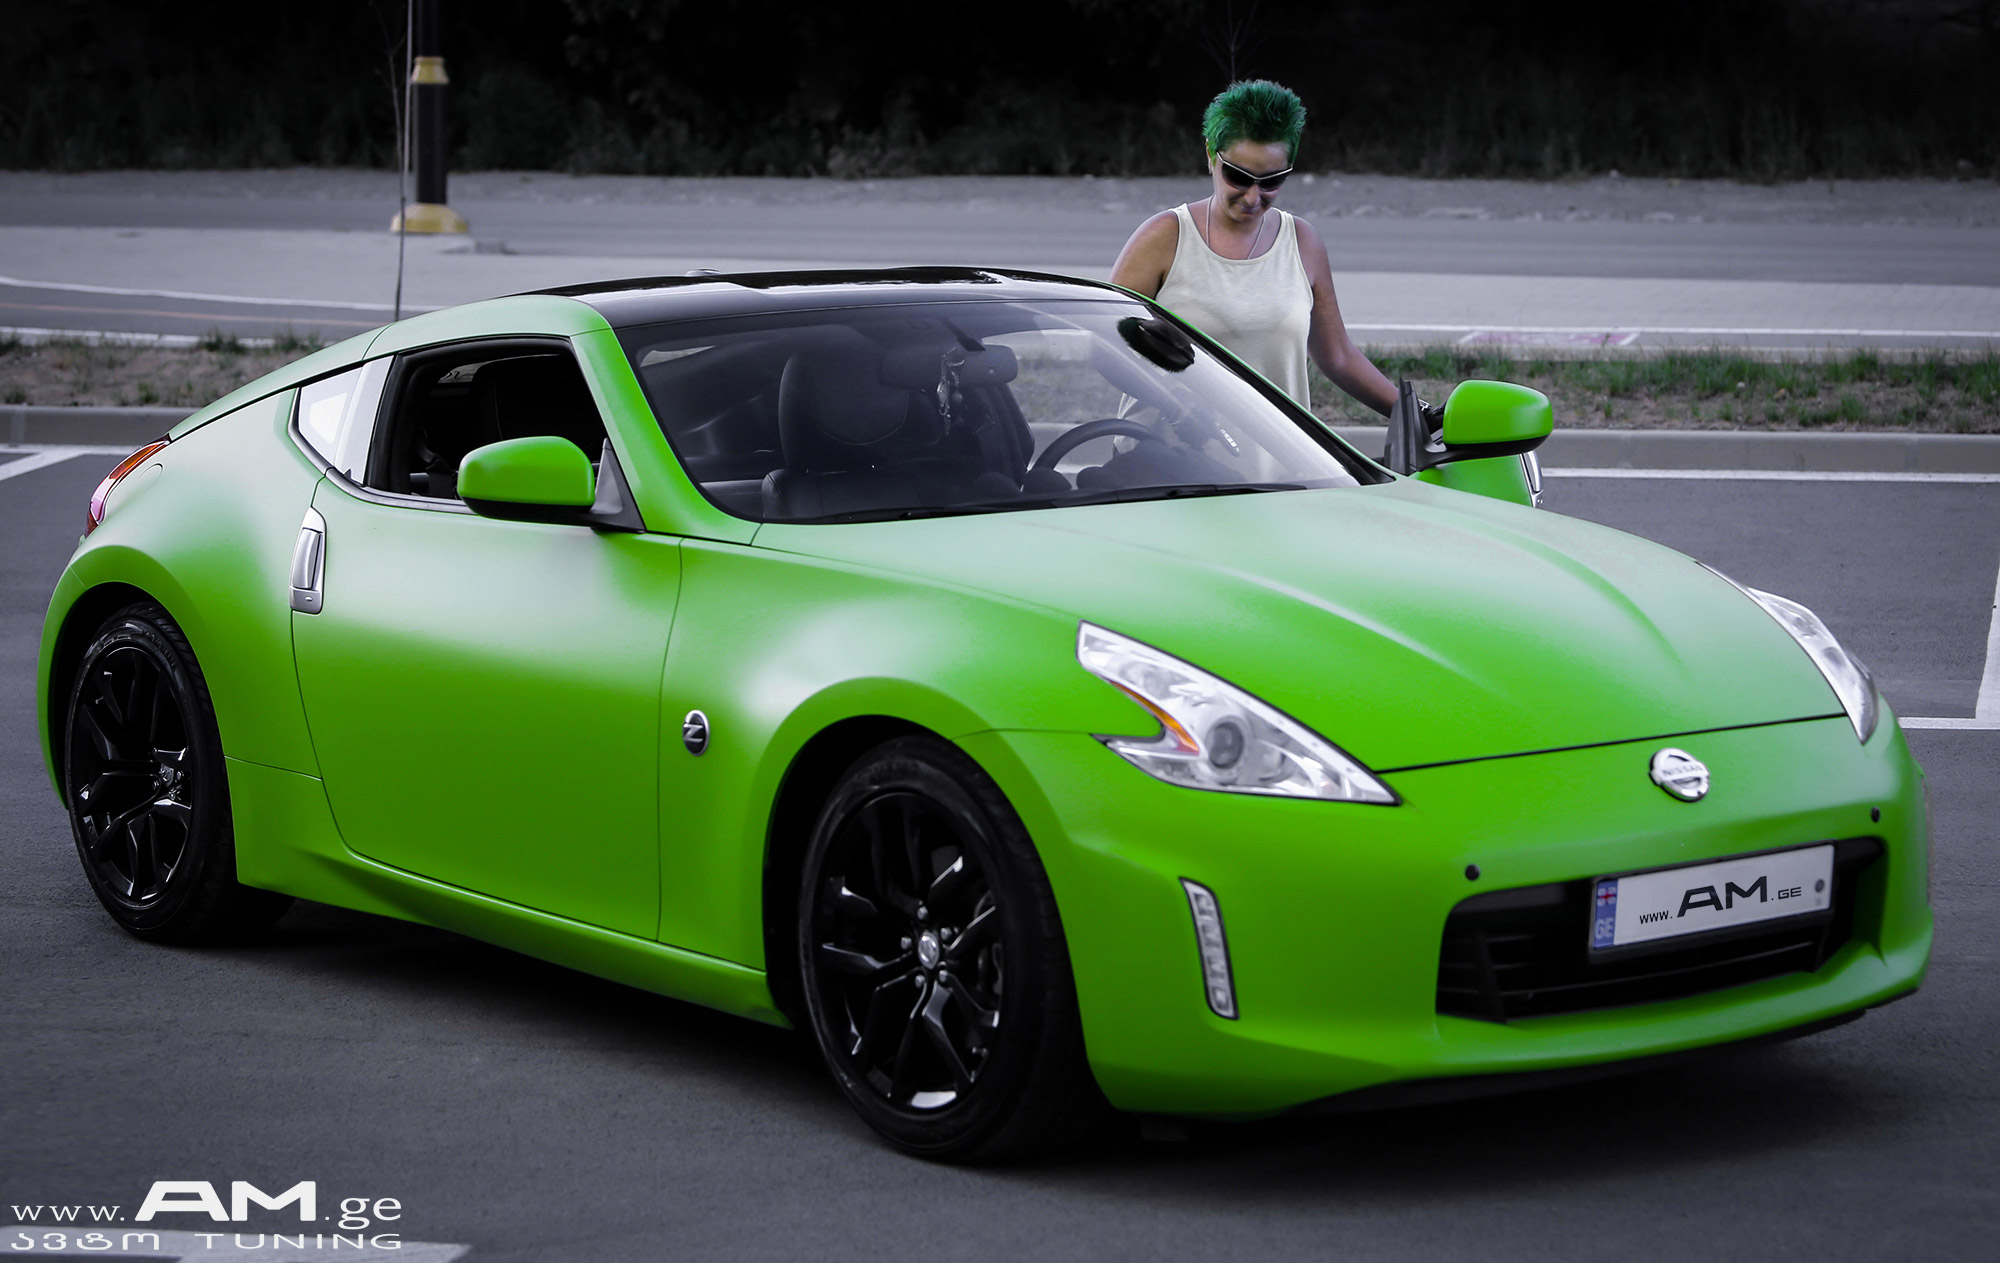 Nissan Z370 Green Car Wrapping Auto Am Ge